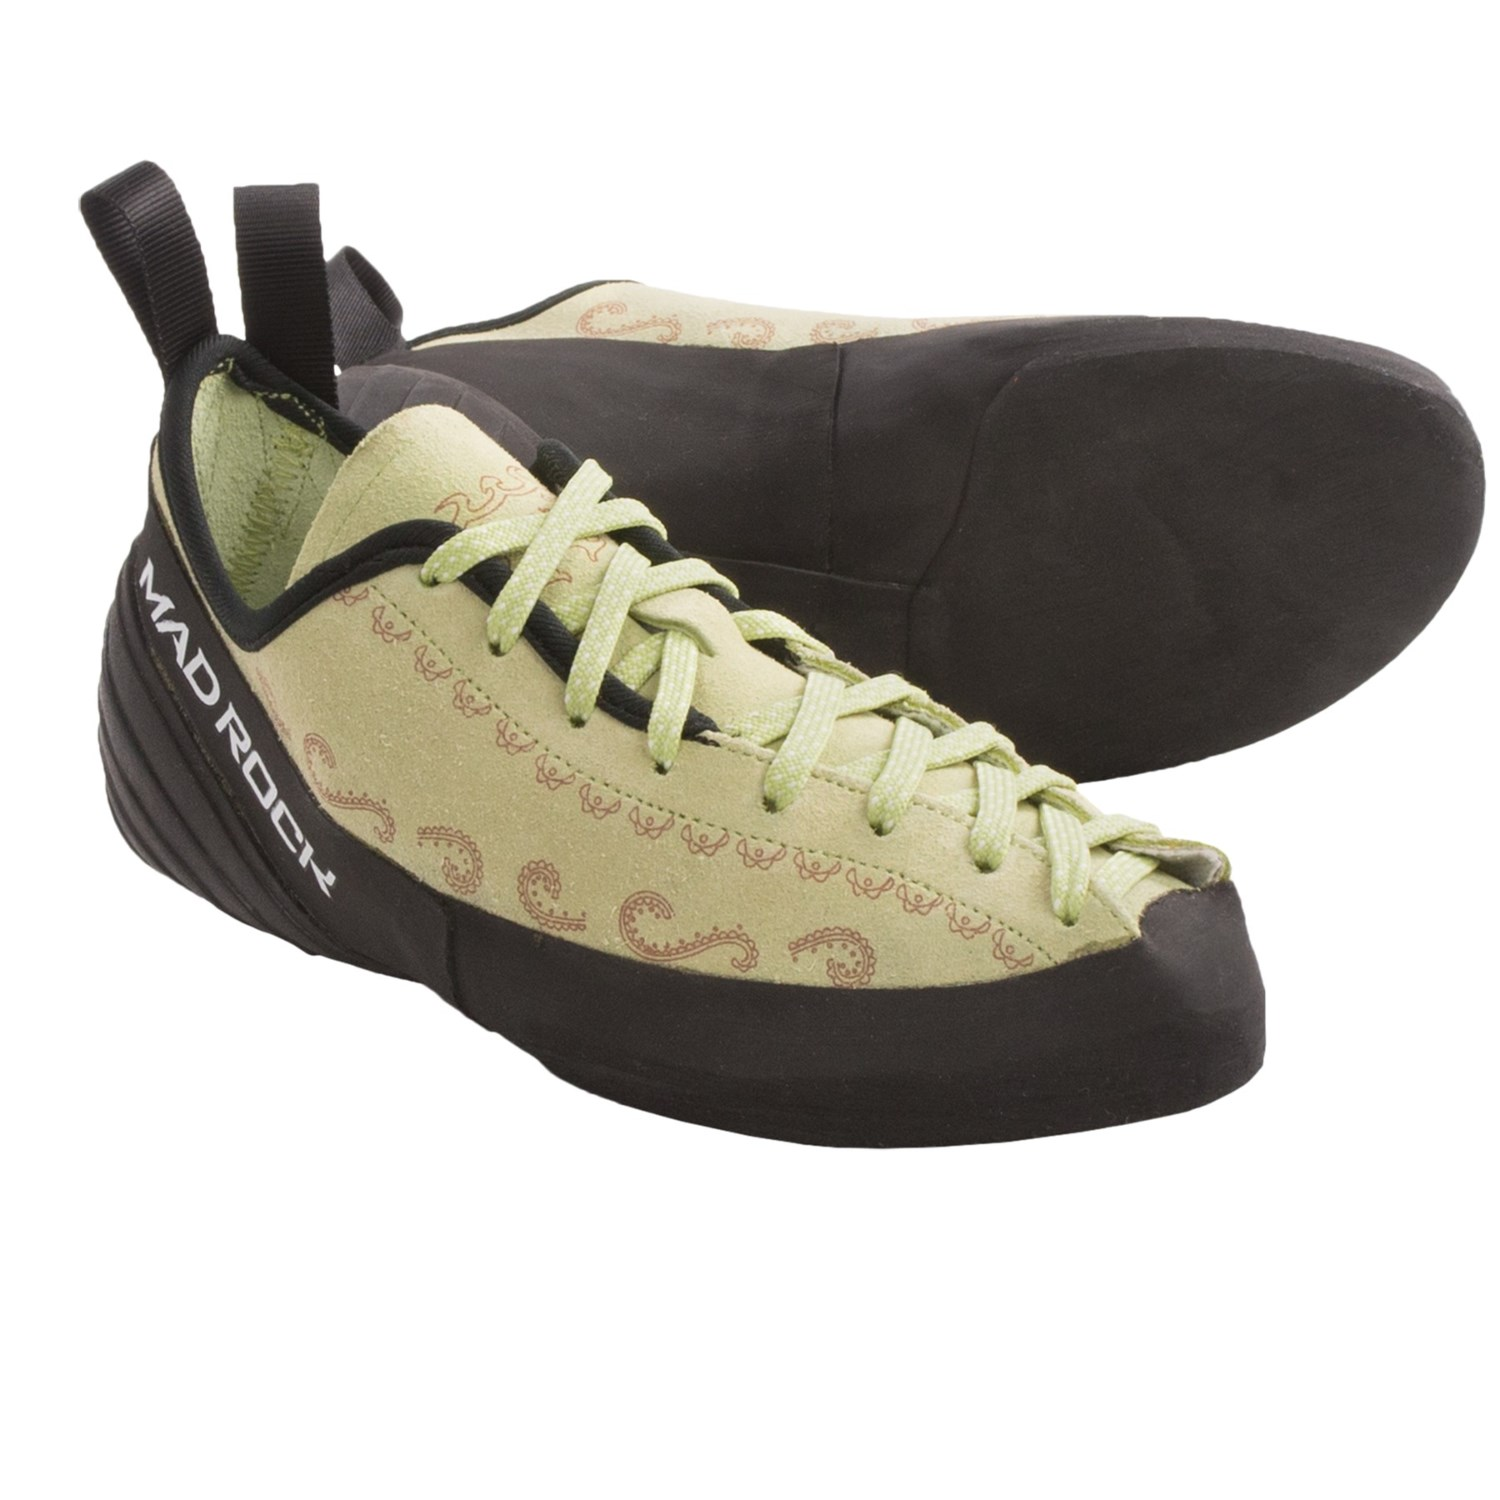 Mad Rock Climbing Shoes Price